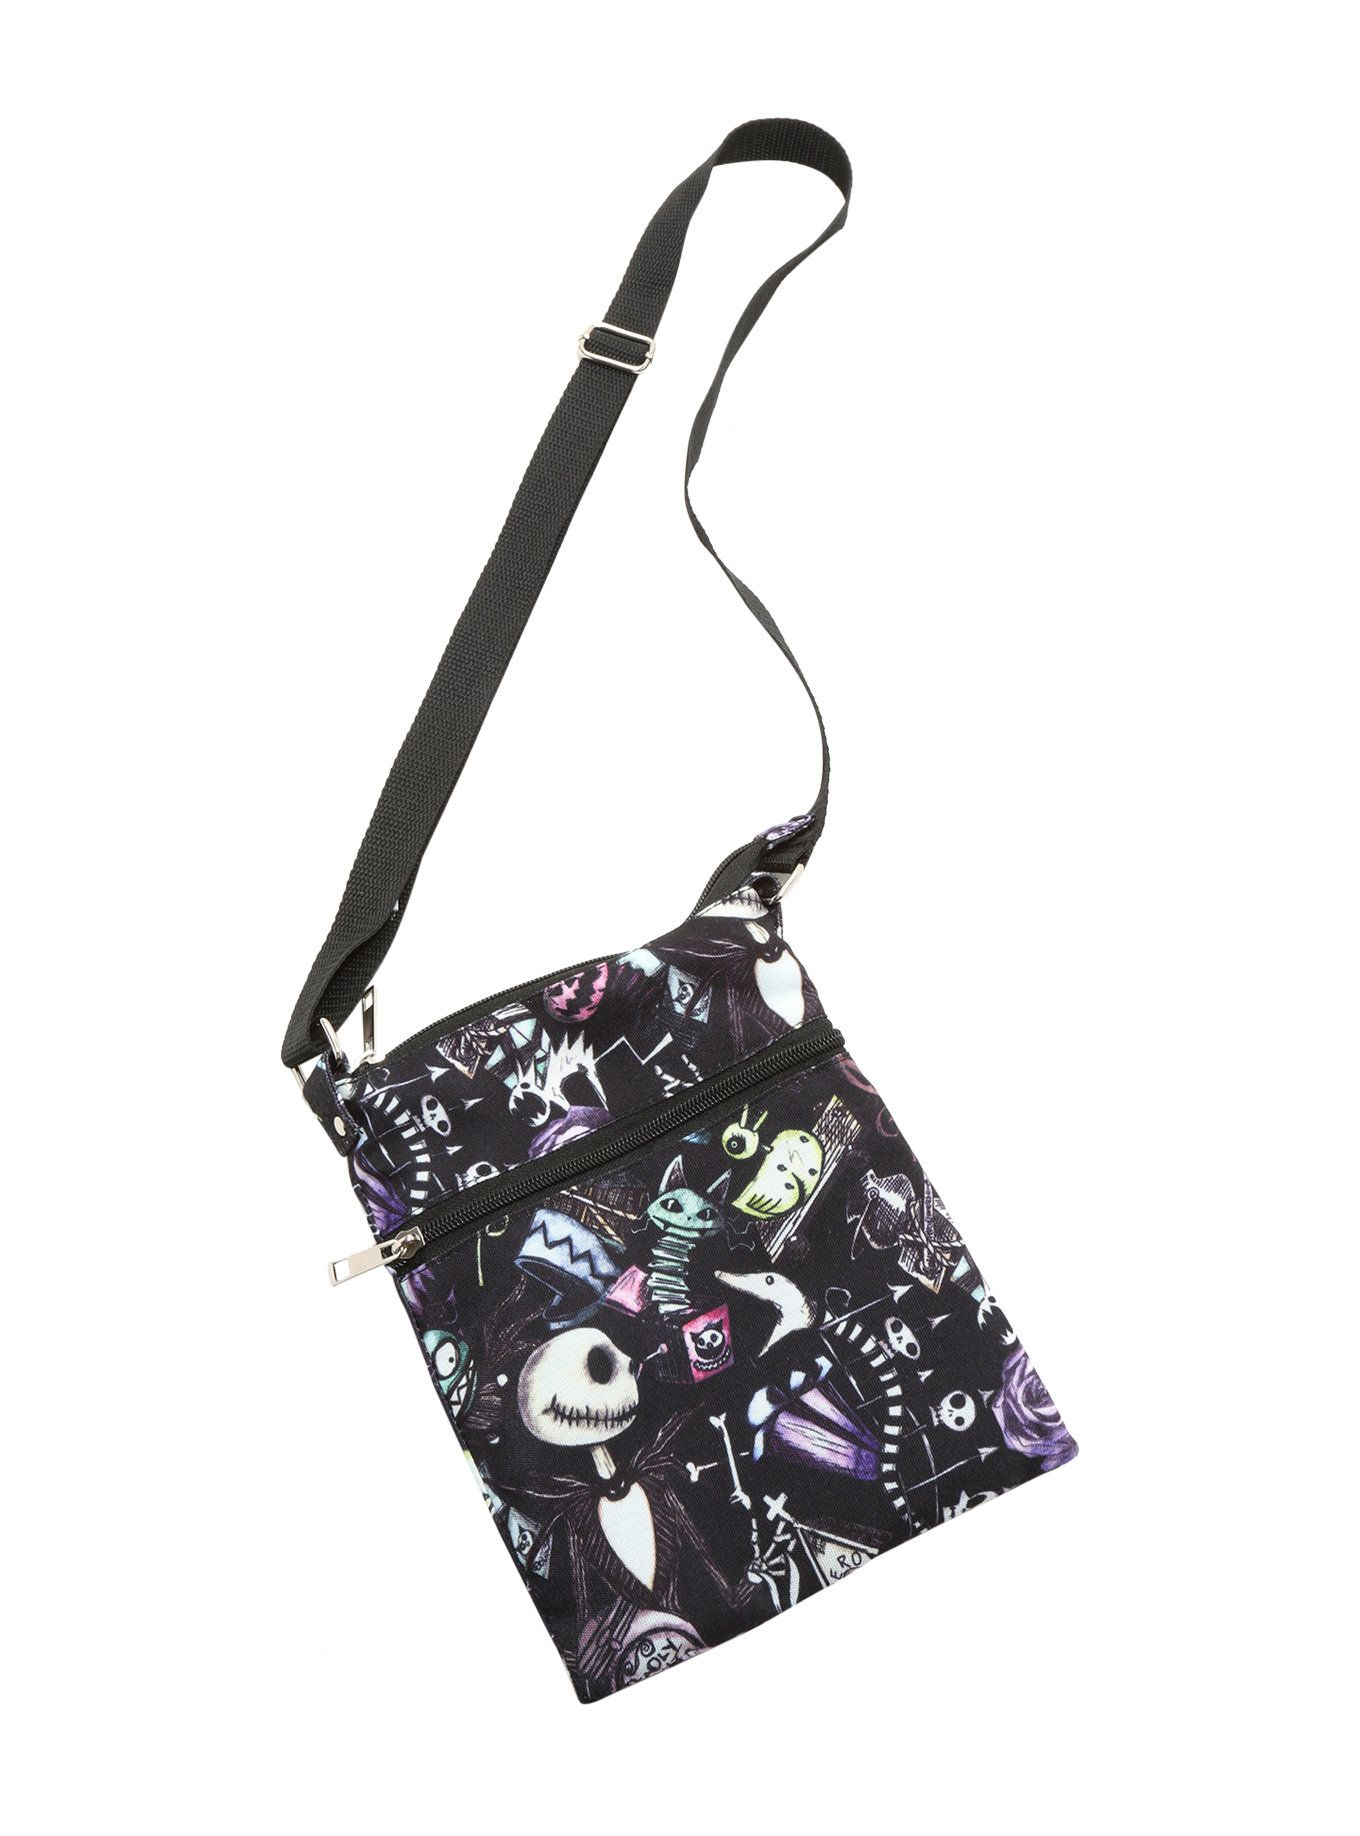 The Nightmare Before Christmas Sketchy Crossbody Bag | Pinterest ...